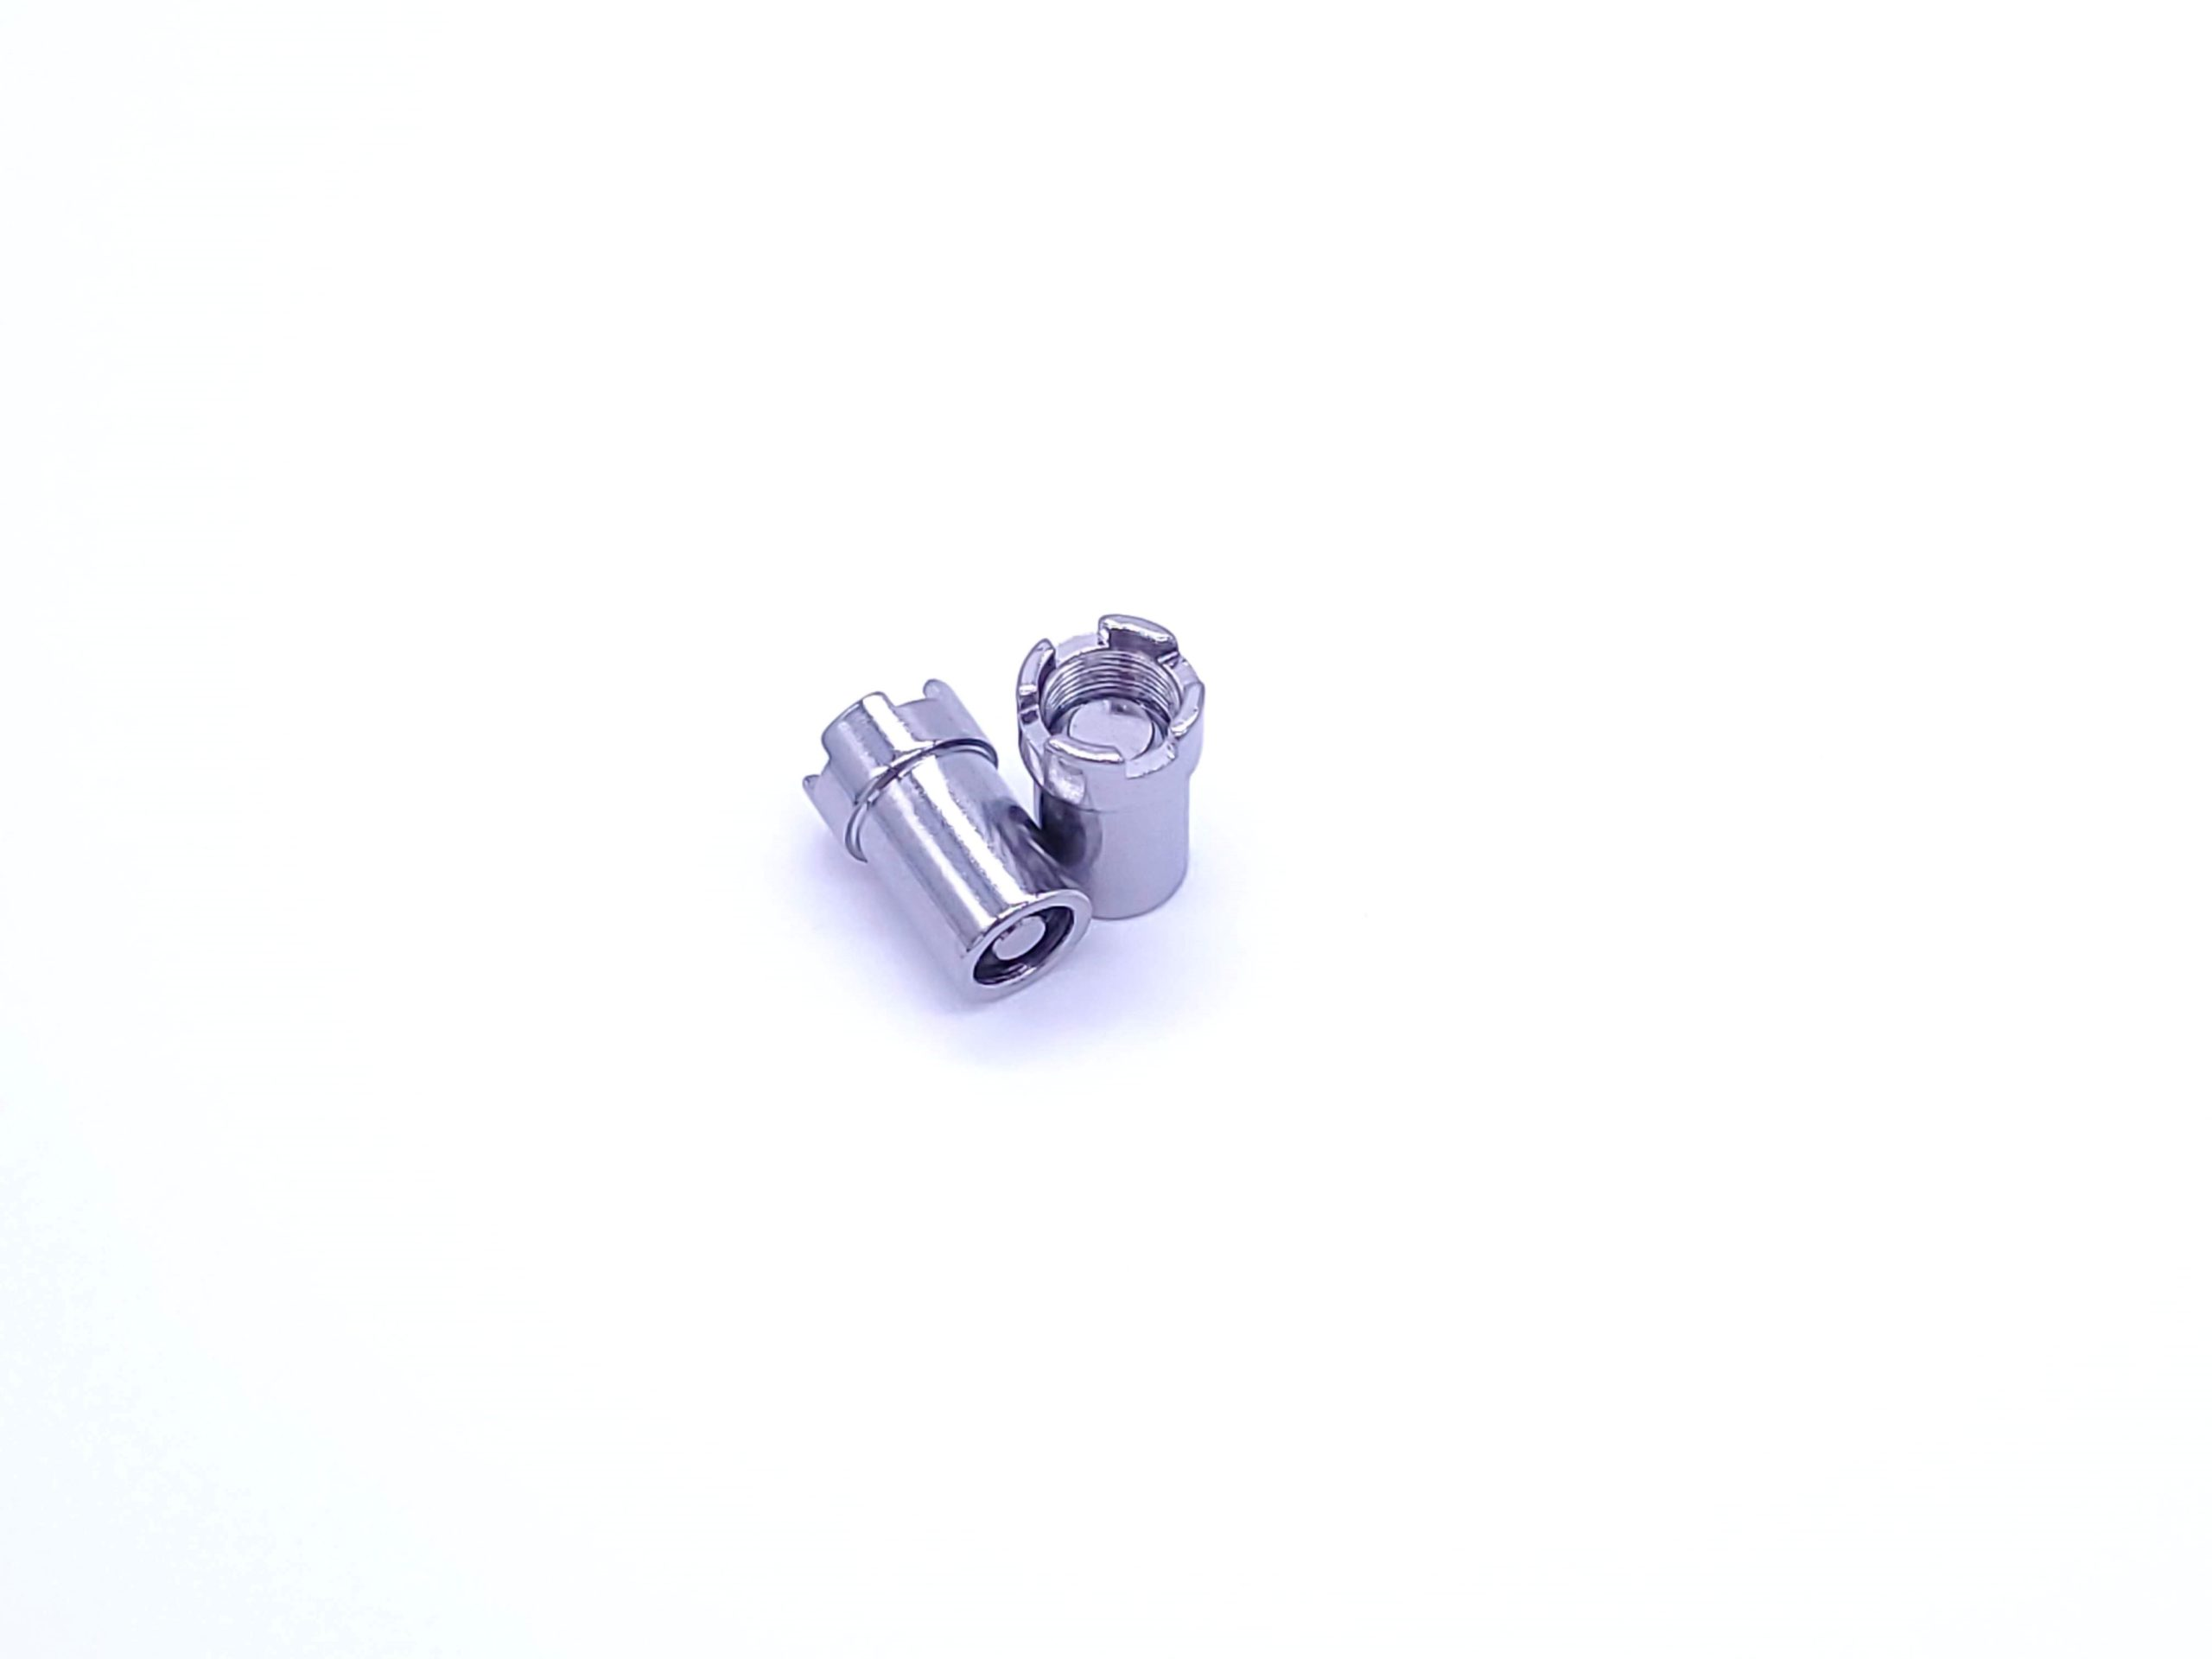 Magnetic Adapter for Yocan Uni and Uni Pro